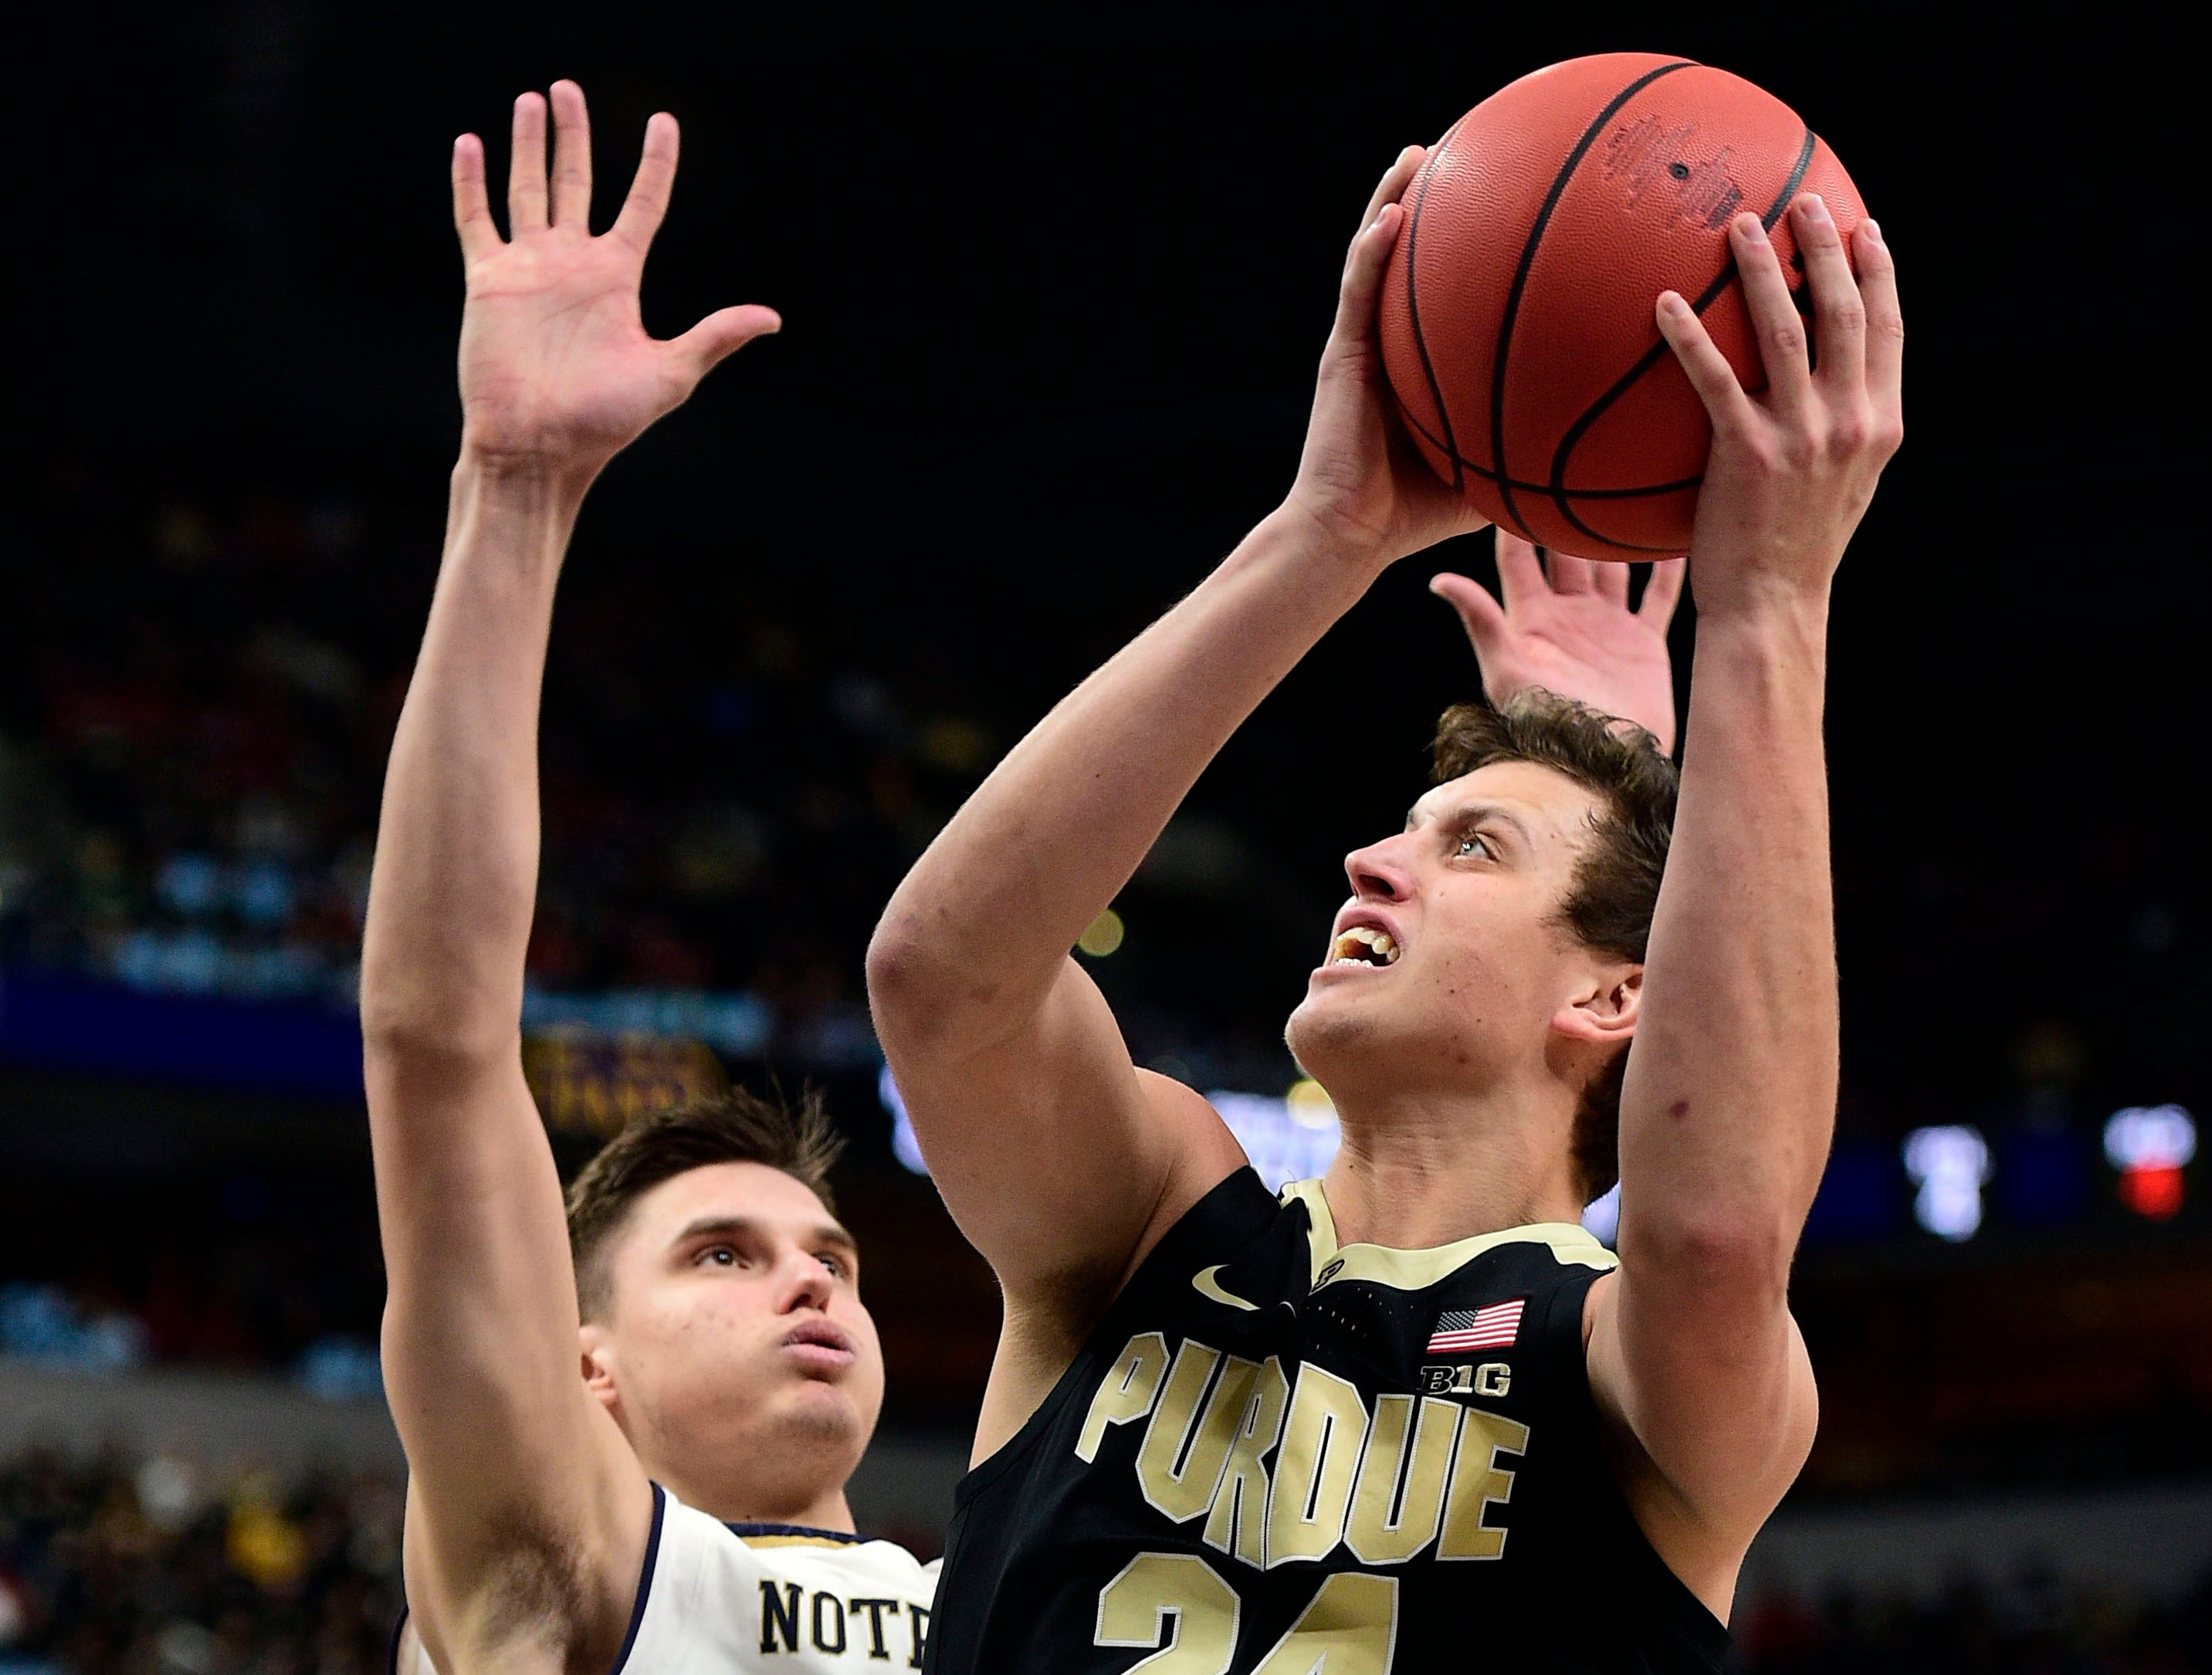 Dec 15, 2018; Indianapolis, IN, USA; Purdue Boilermaker guards Grady Eifert (24) goes past Notre Dame Fighting Irish forward Nate Laszewski (14) at Bankers Life Fieldhouse. Mandatory Credit: Thomas J. Russo-USA TODAY Sports